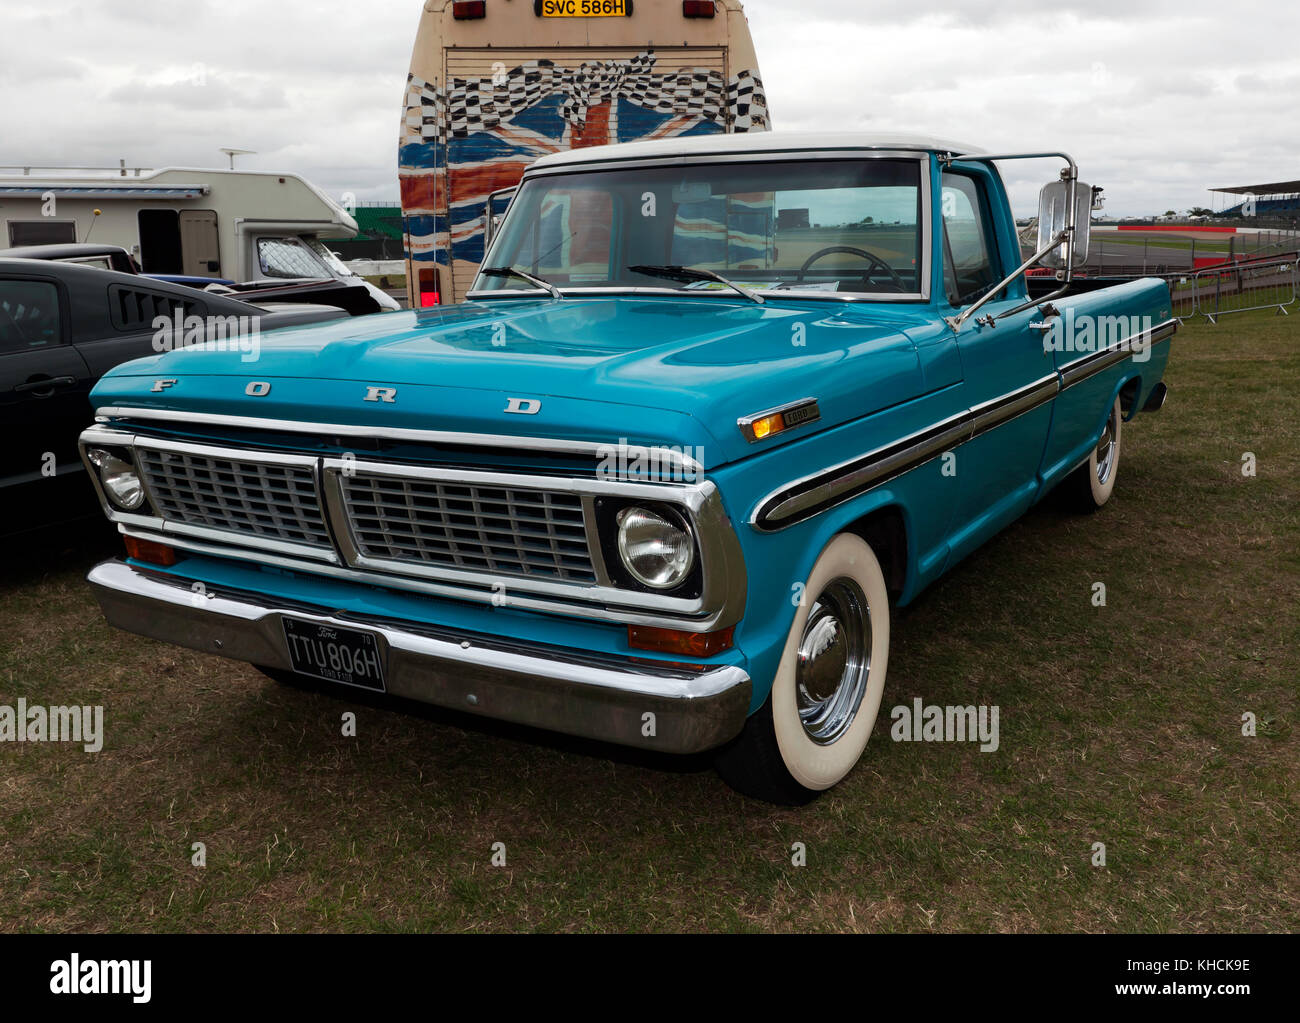 hight resolution of three quarter front view of a 1970 ford f100 pick up truck